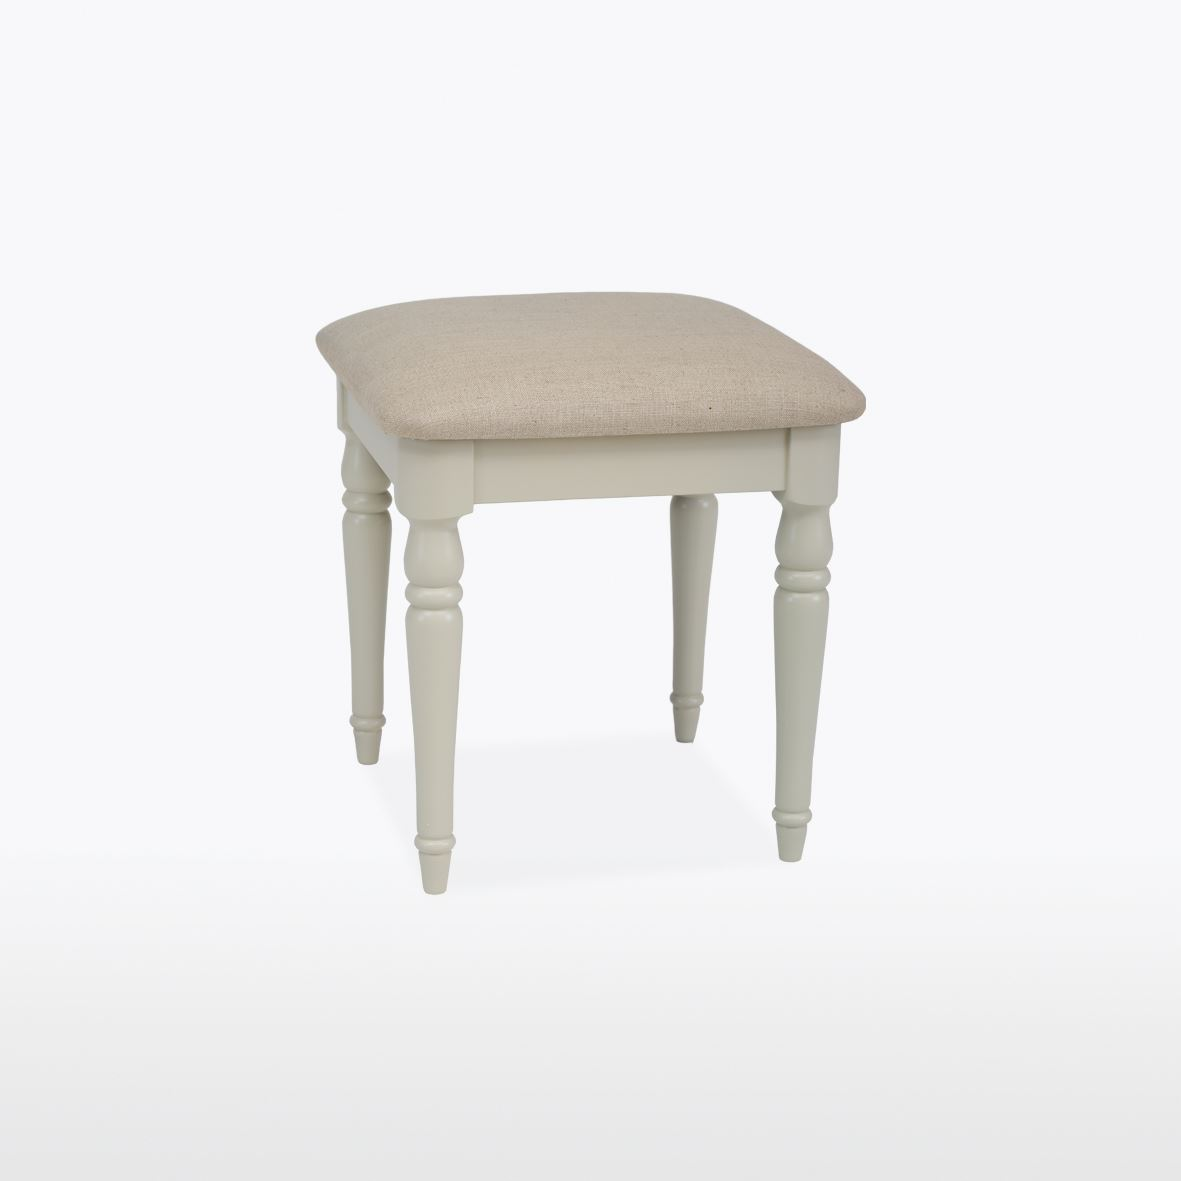 CROMWELL - Bedroom Stool - CRO816